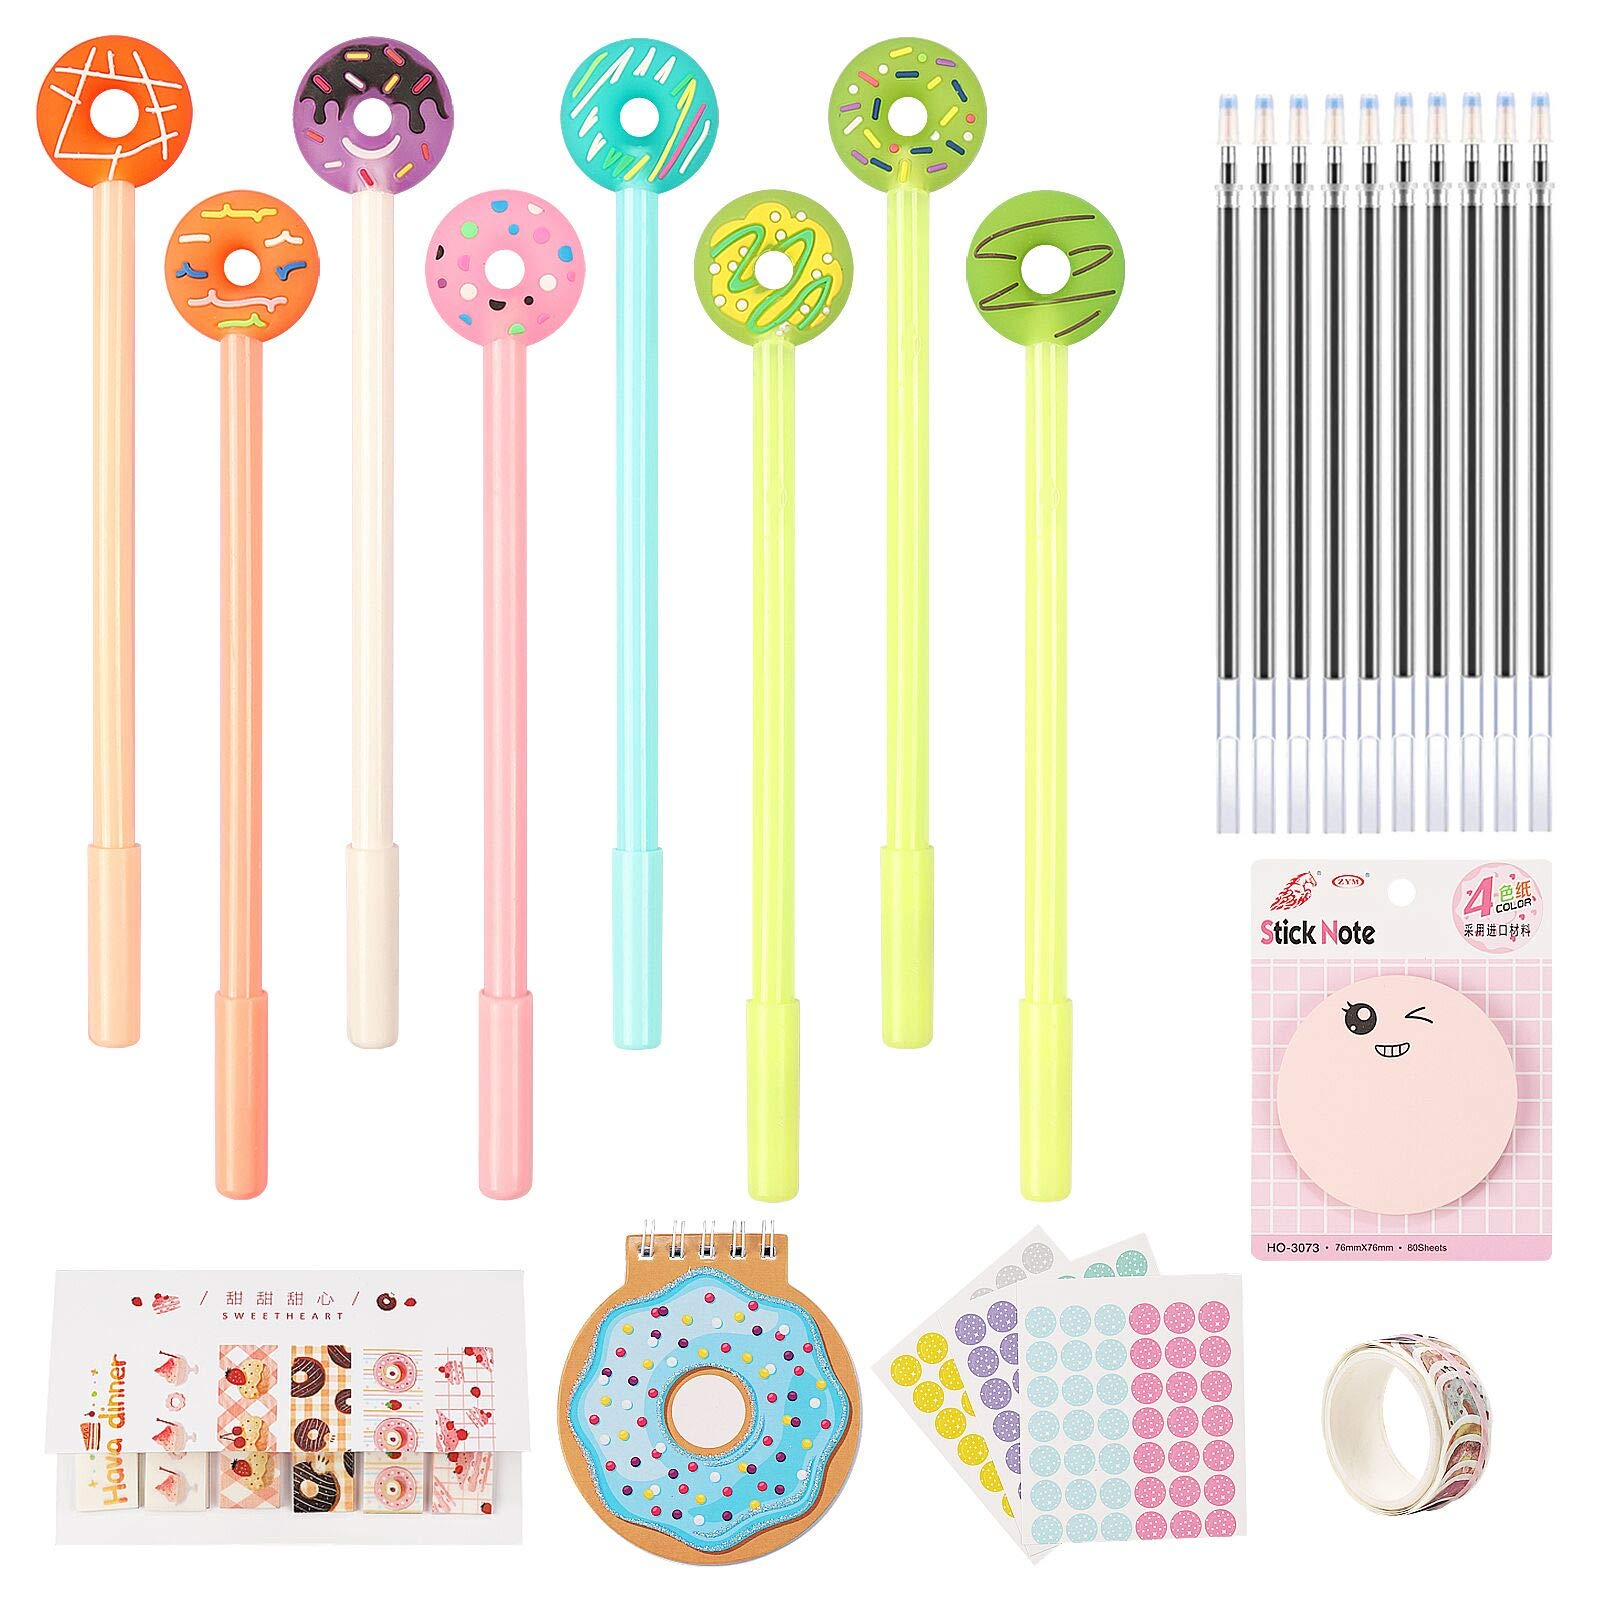 25 Pieces Gel Ink Pens Set,Include 8 Donut Gel Pens,10 Refills,5 Sticky Notes and Cute Notepad for Student Children Home School Office Stationery Supplies Birthday Gifts